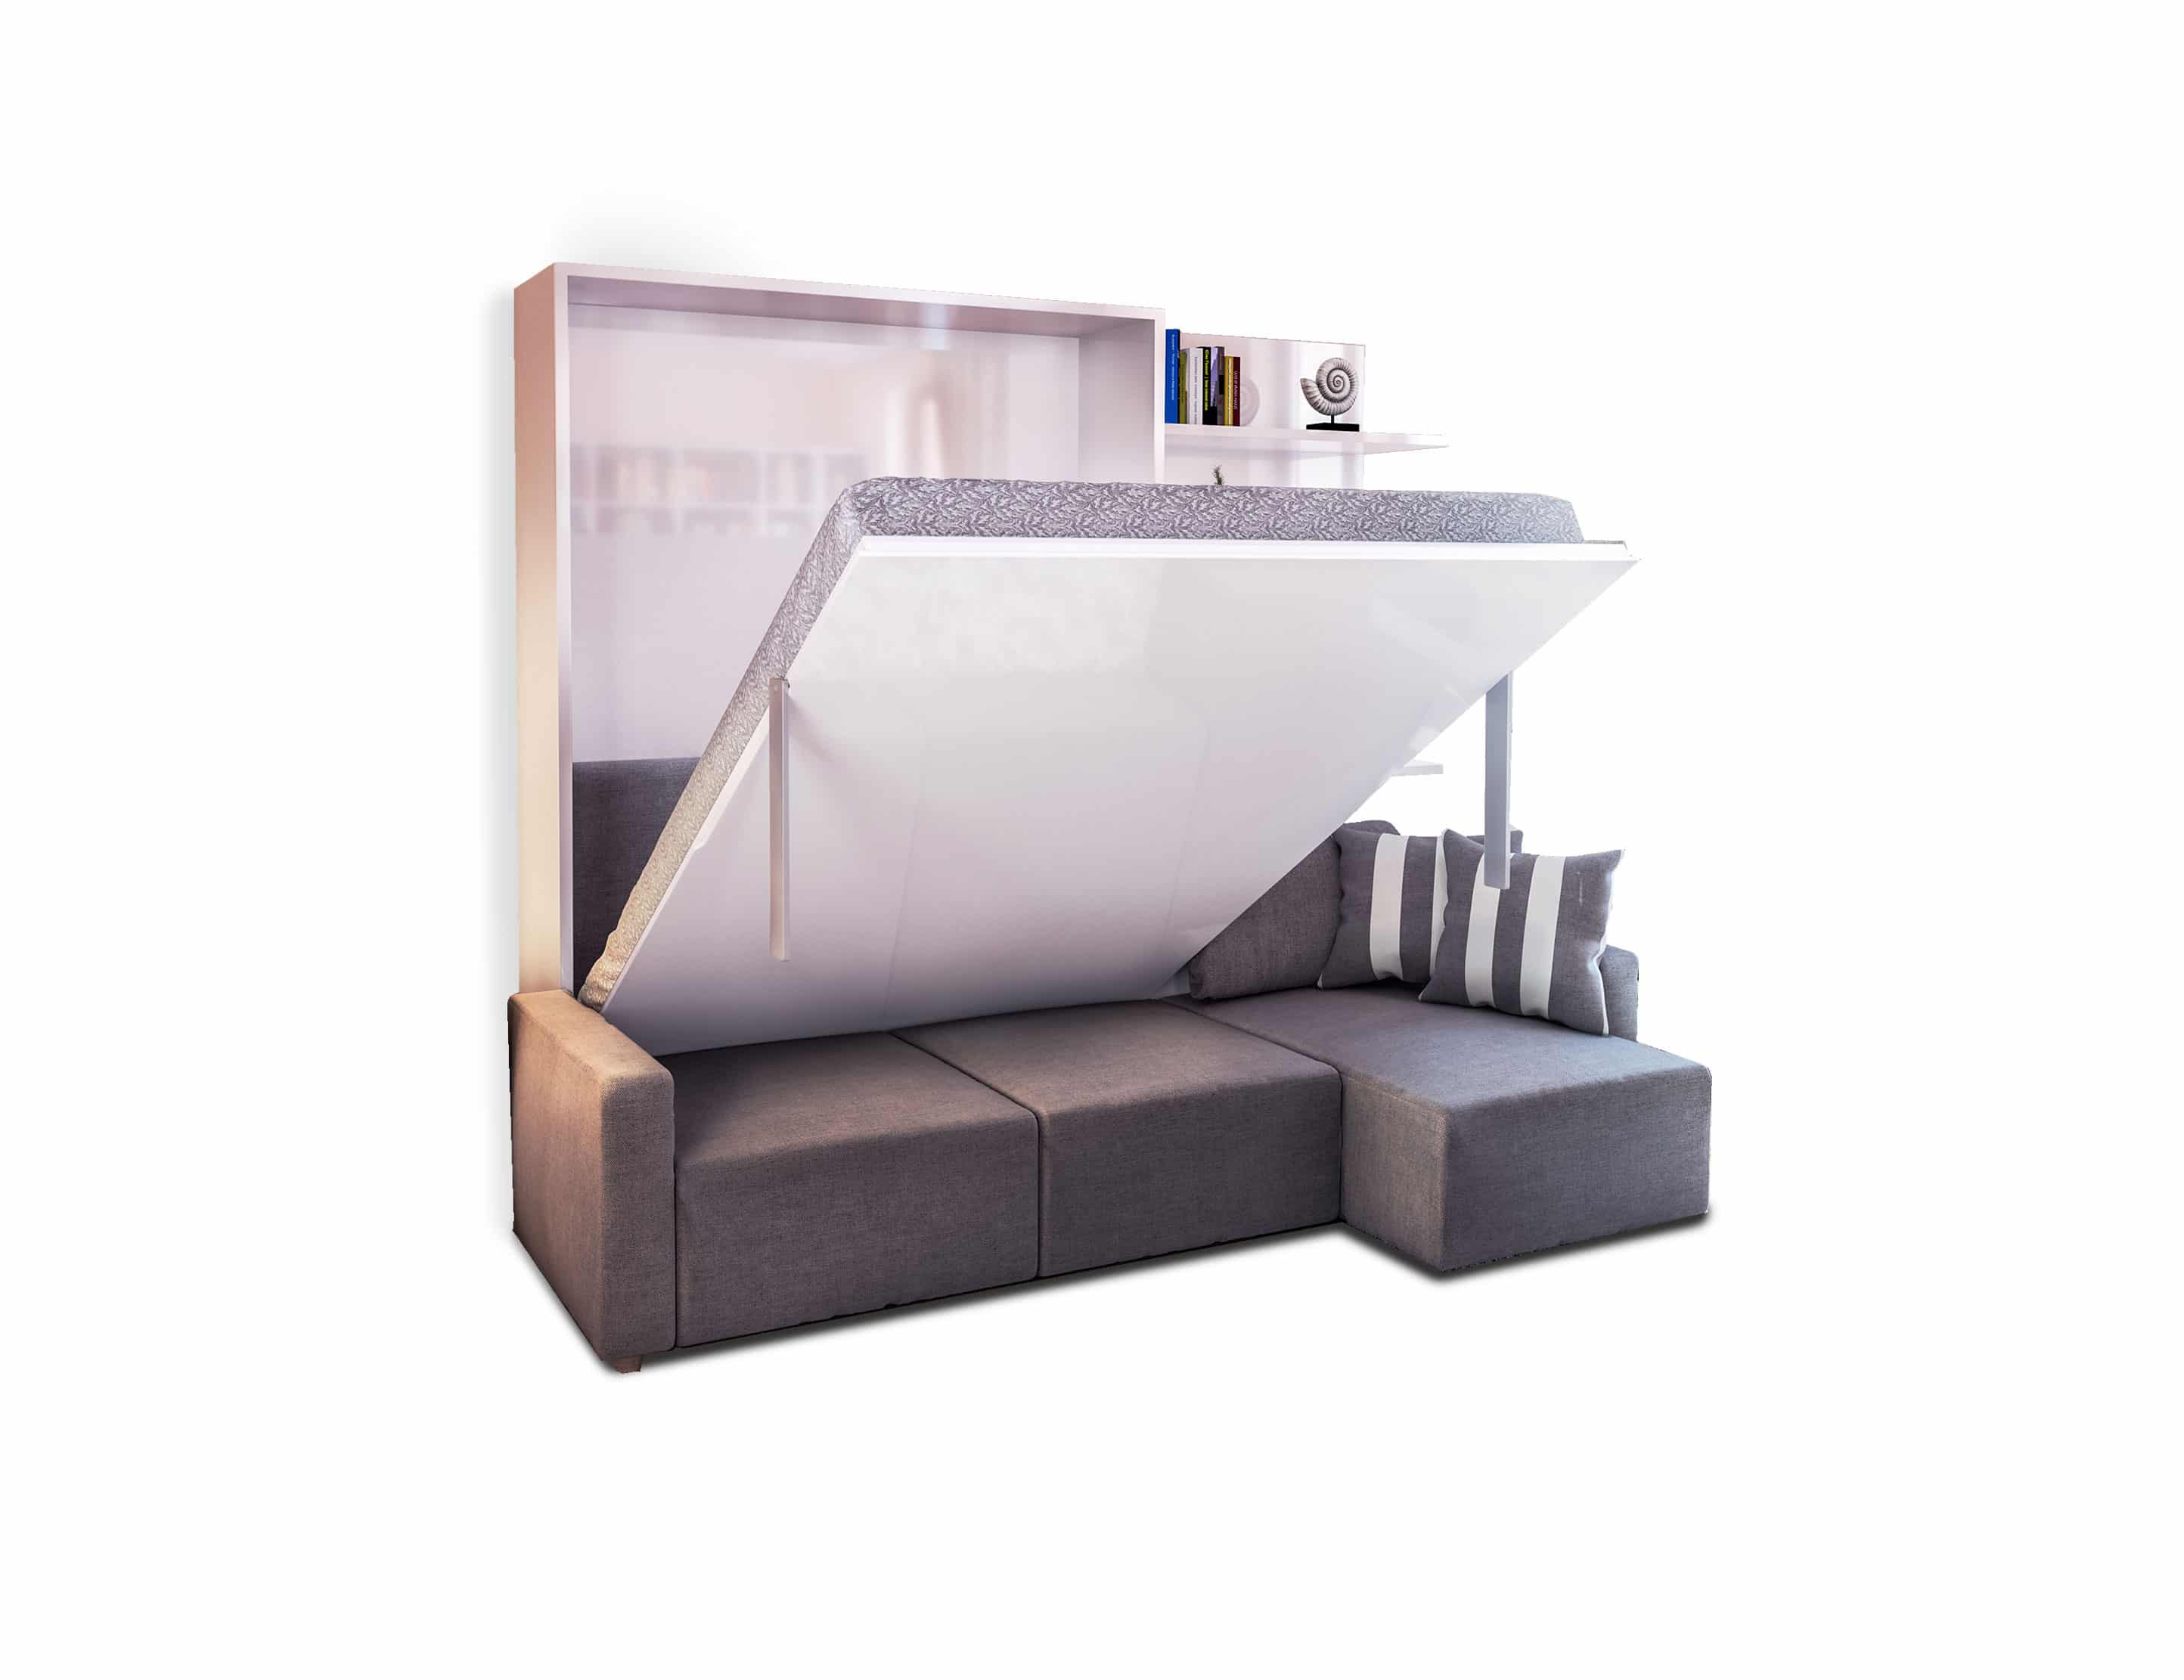 Clean Murphysofa Sectional Wall Bed Expand Furniture